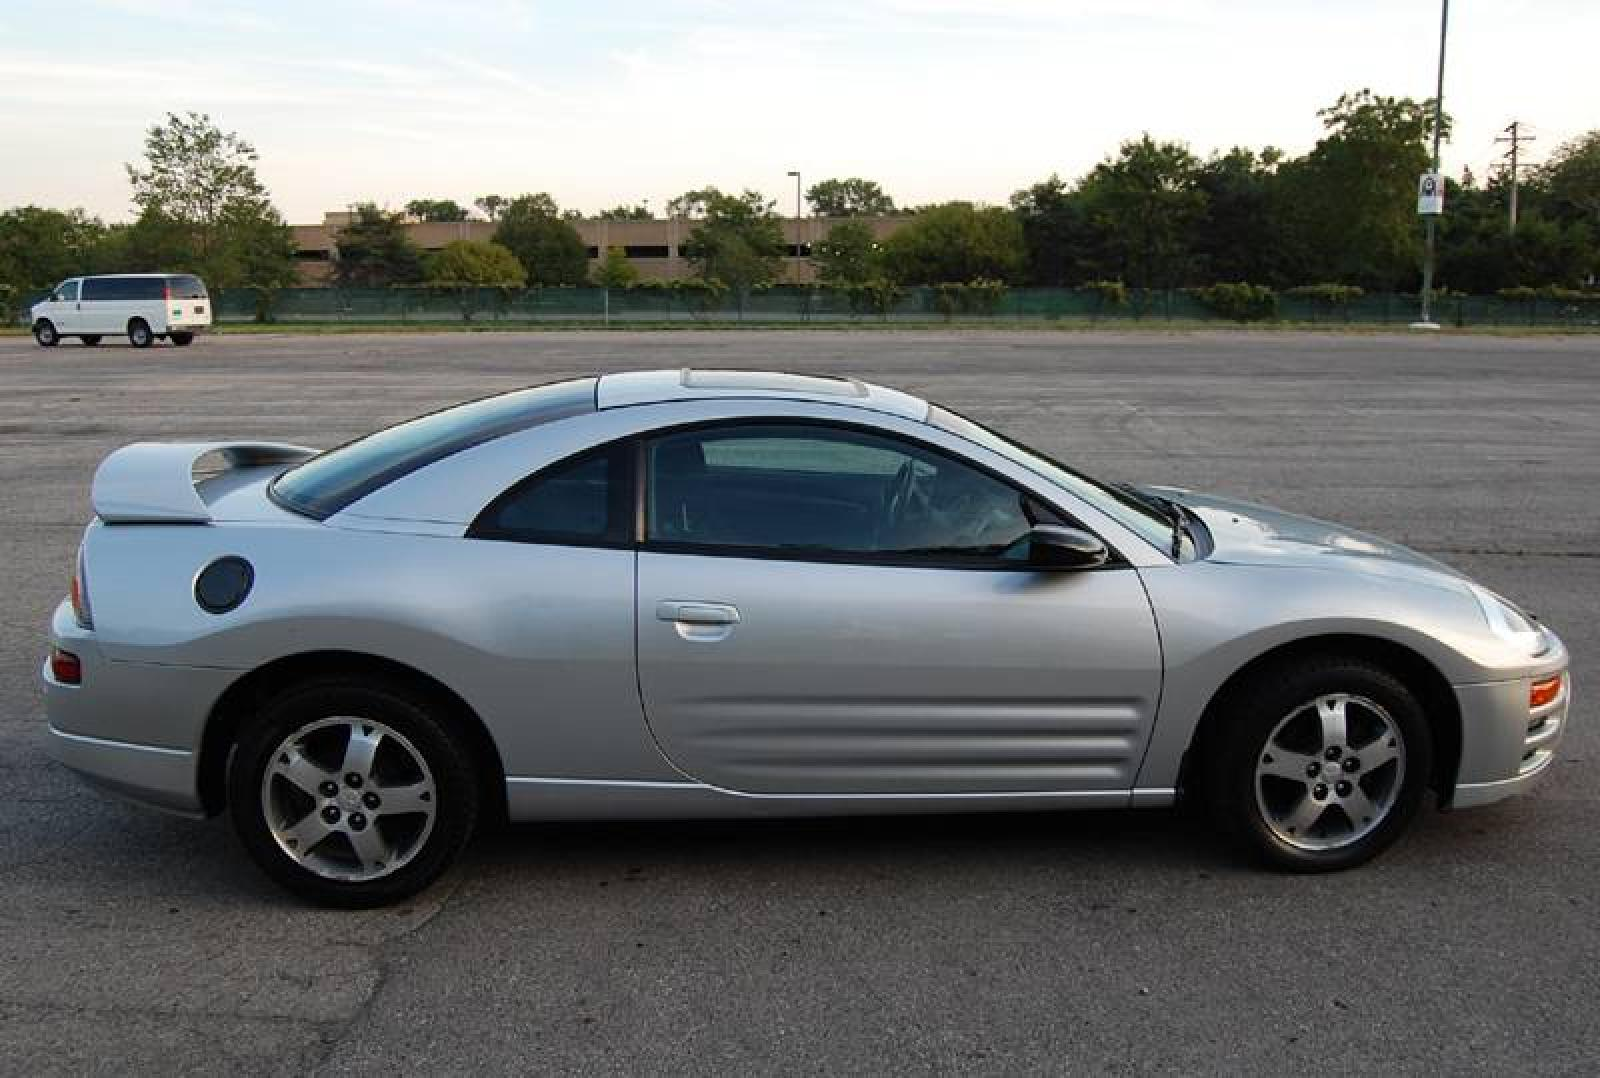 2003 Mitsubishi Eclipse - Information And Photos